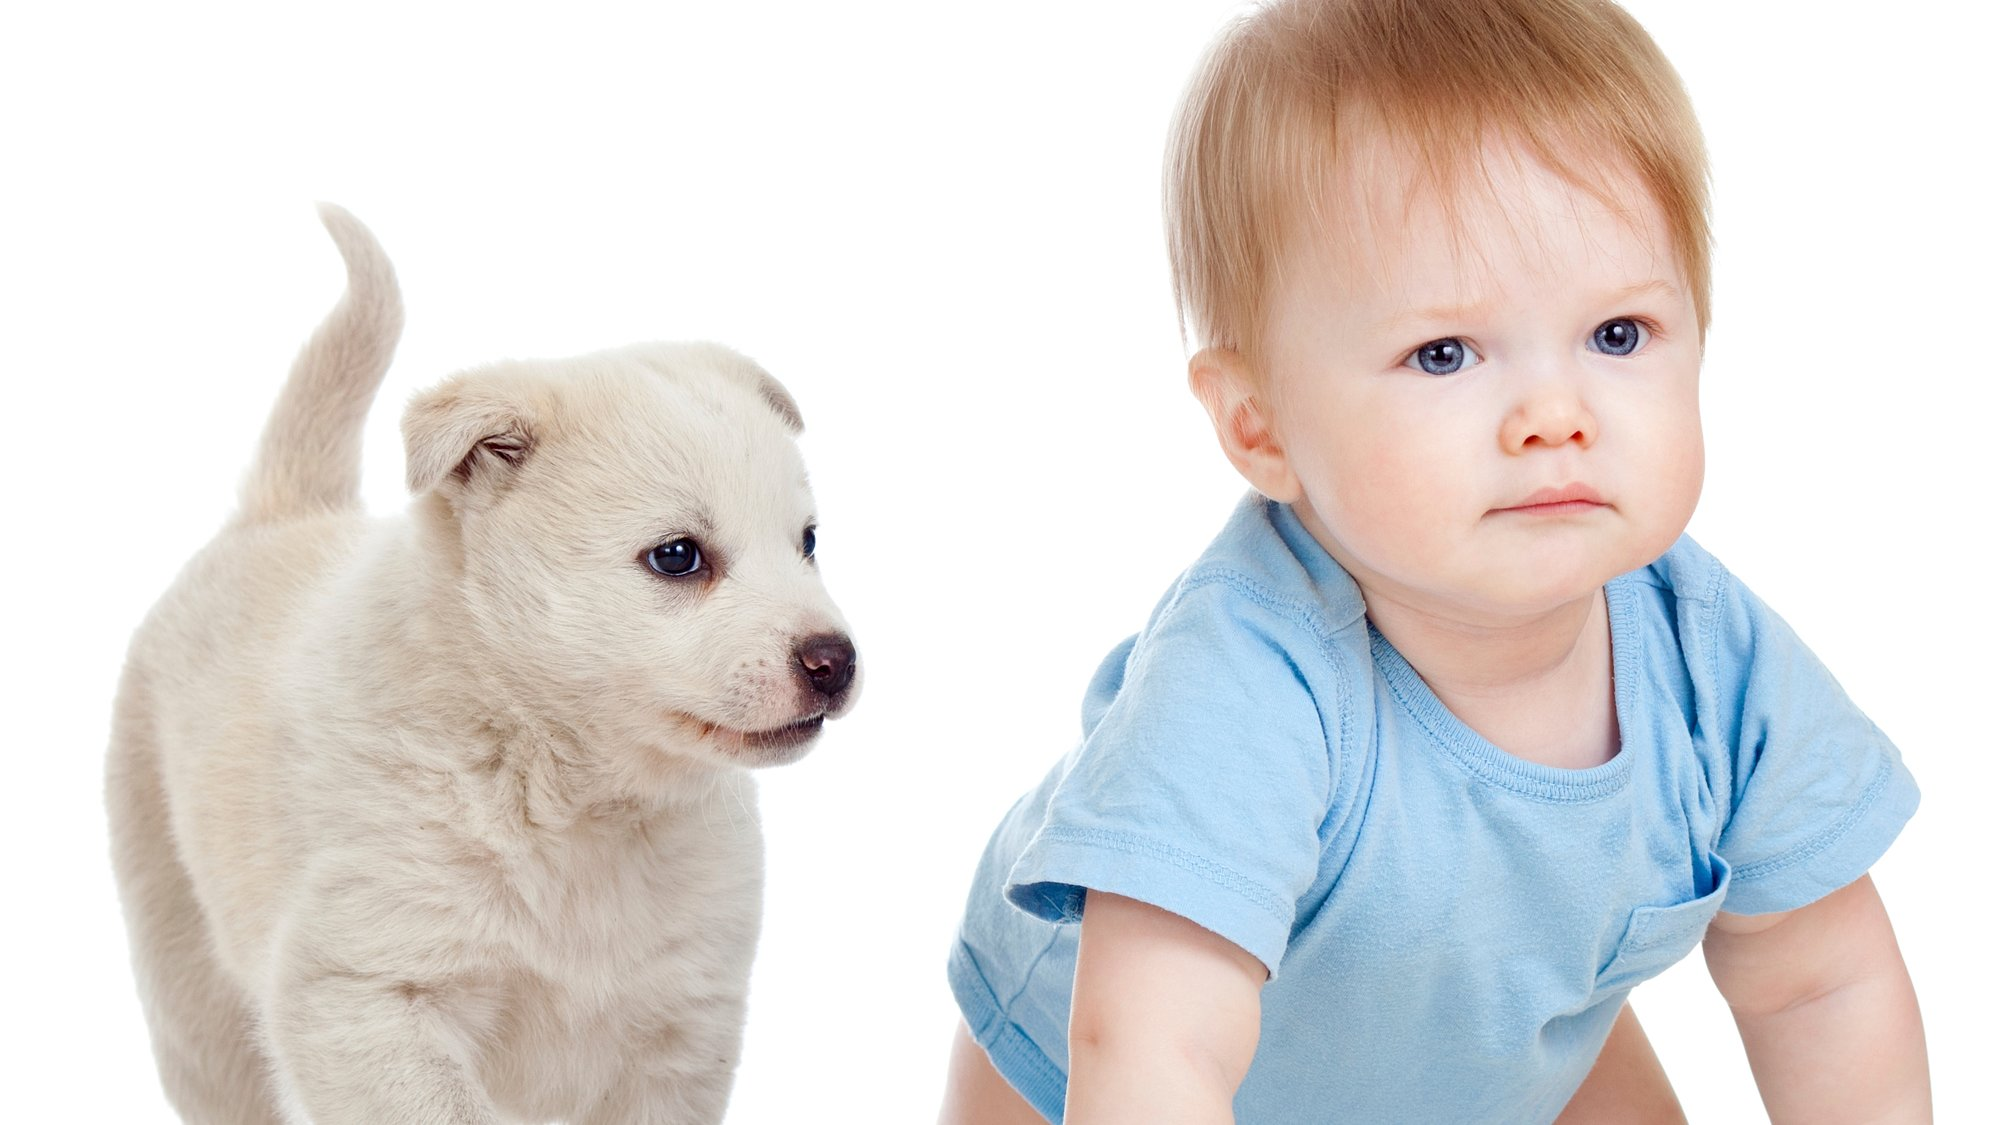 Puppies vs. Babies